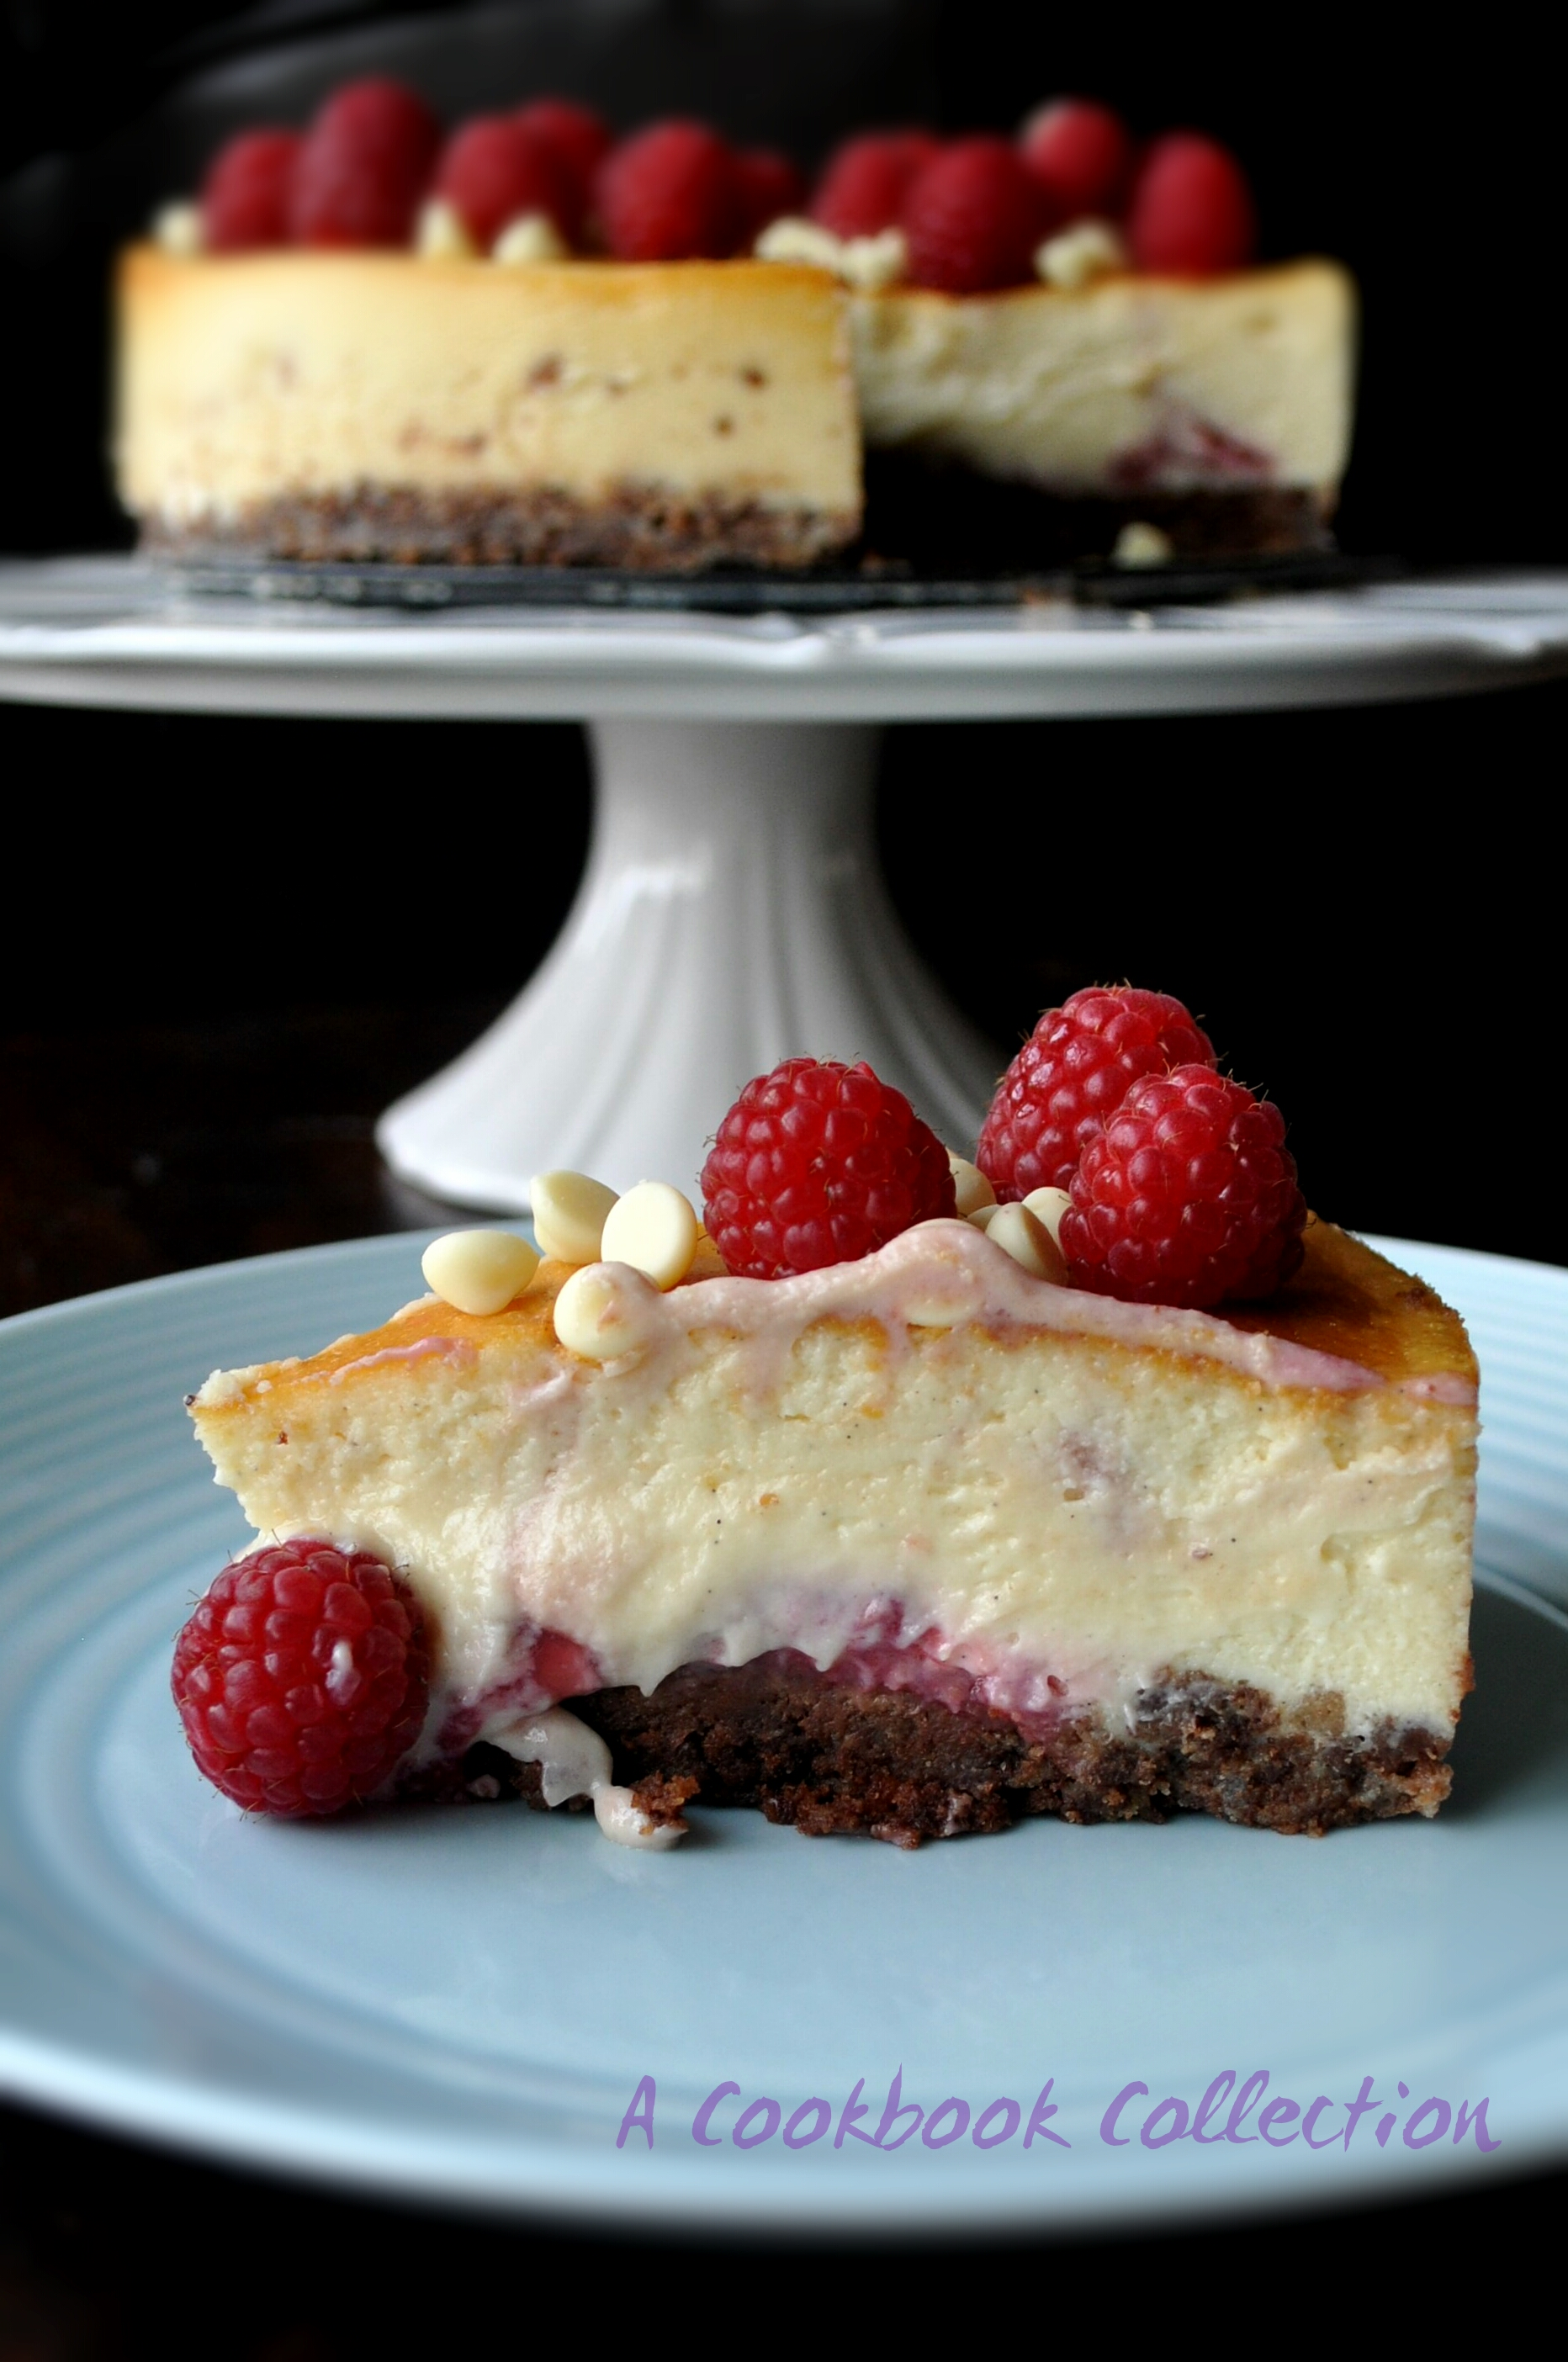 Baked White Chocolate & Raspberry Cheesecake - A Cookbook Collection